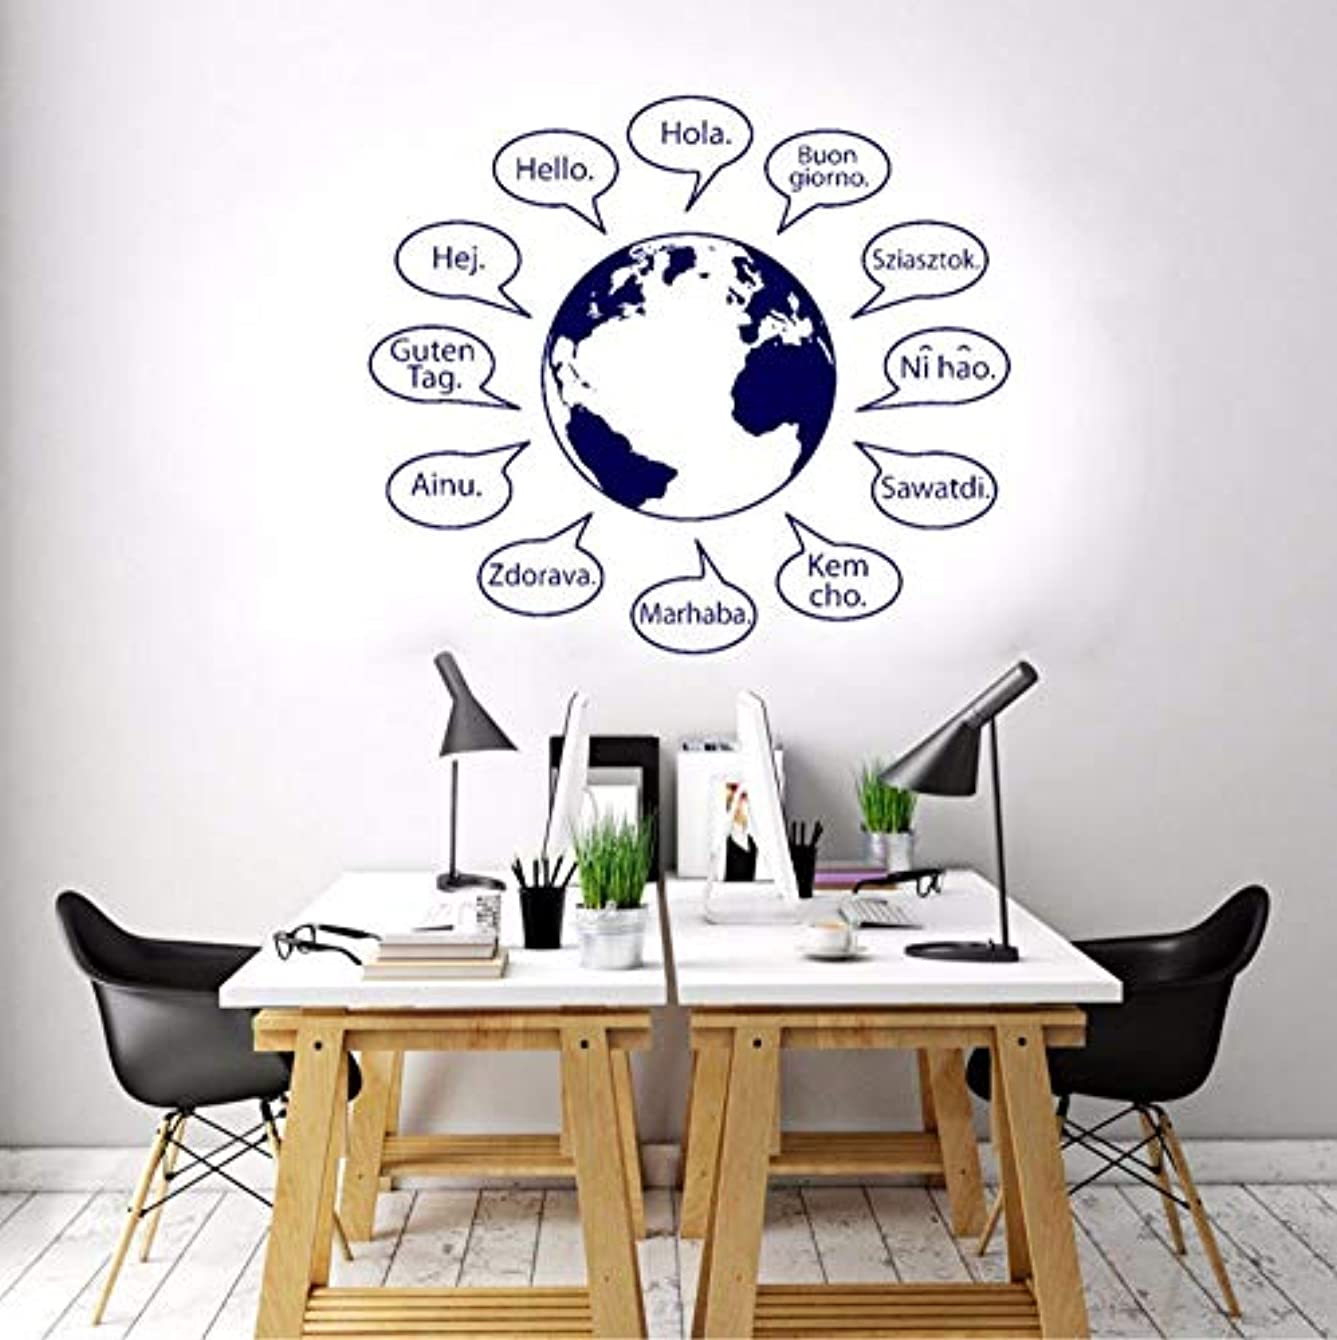 yongkuiniubi Hello Text, Words, Phrases,Sentences, Letters Language Wall Decor,World Globe Map Earth Decal,Window Vinyl Sticker Handmade 66X57CM